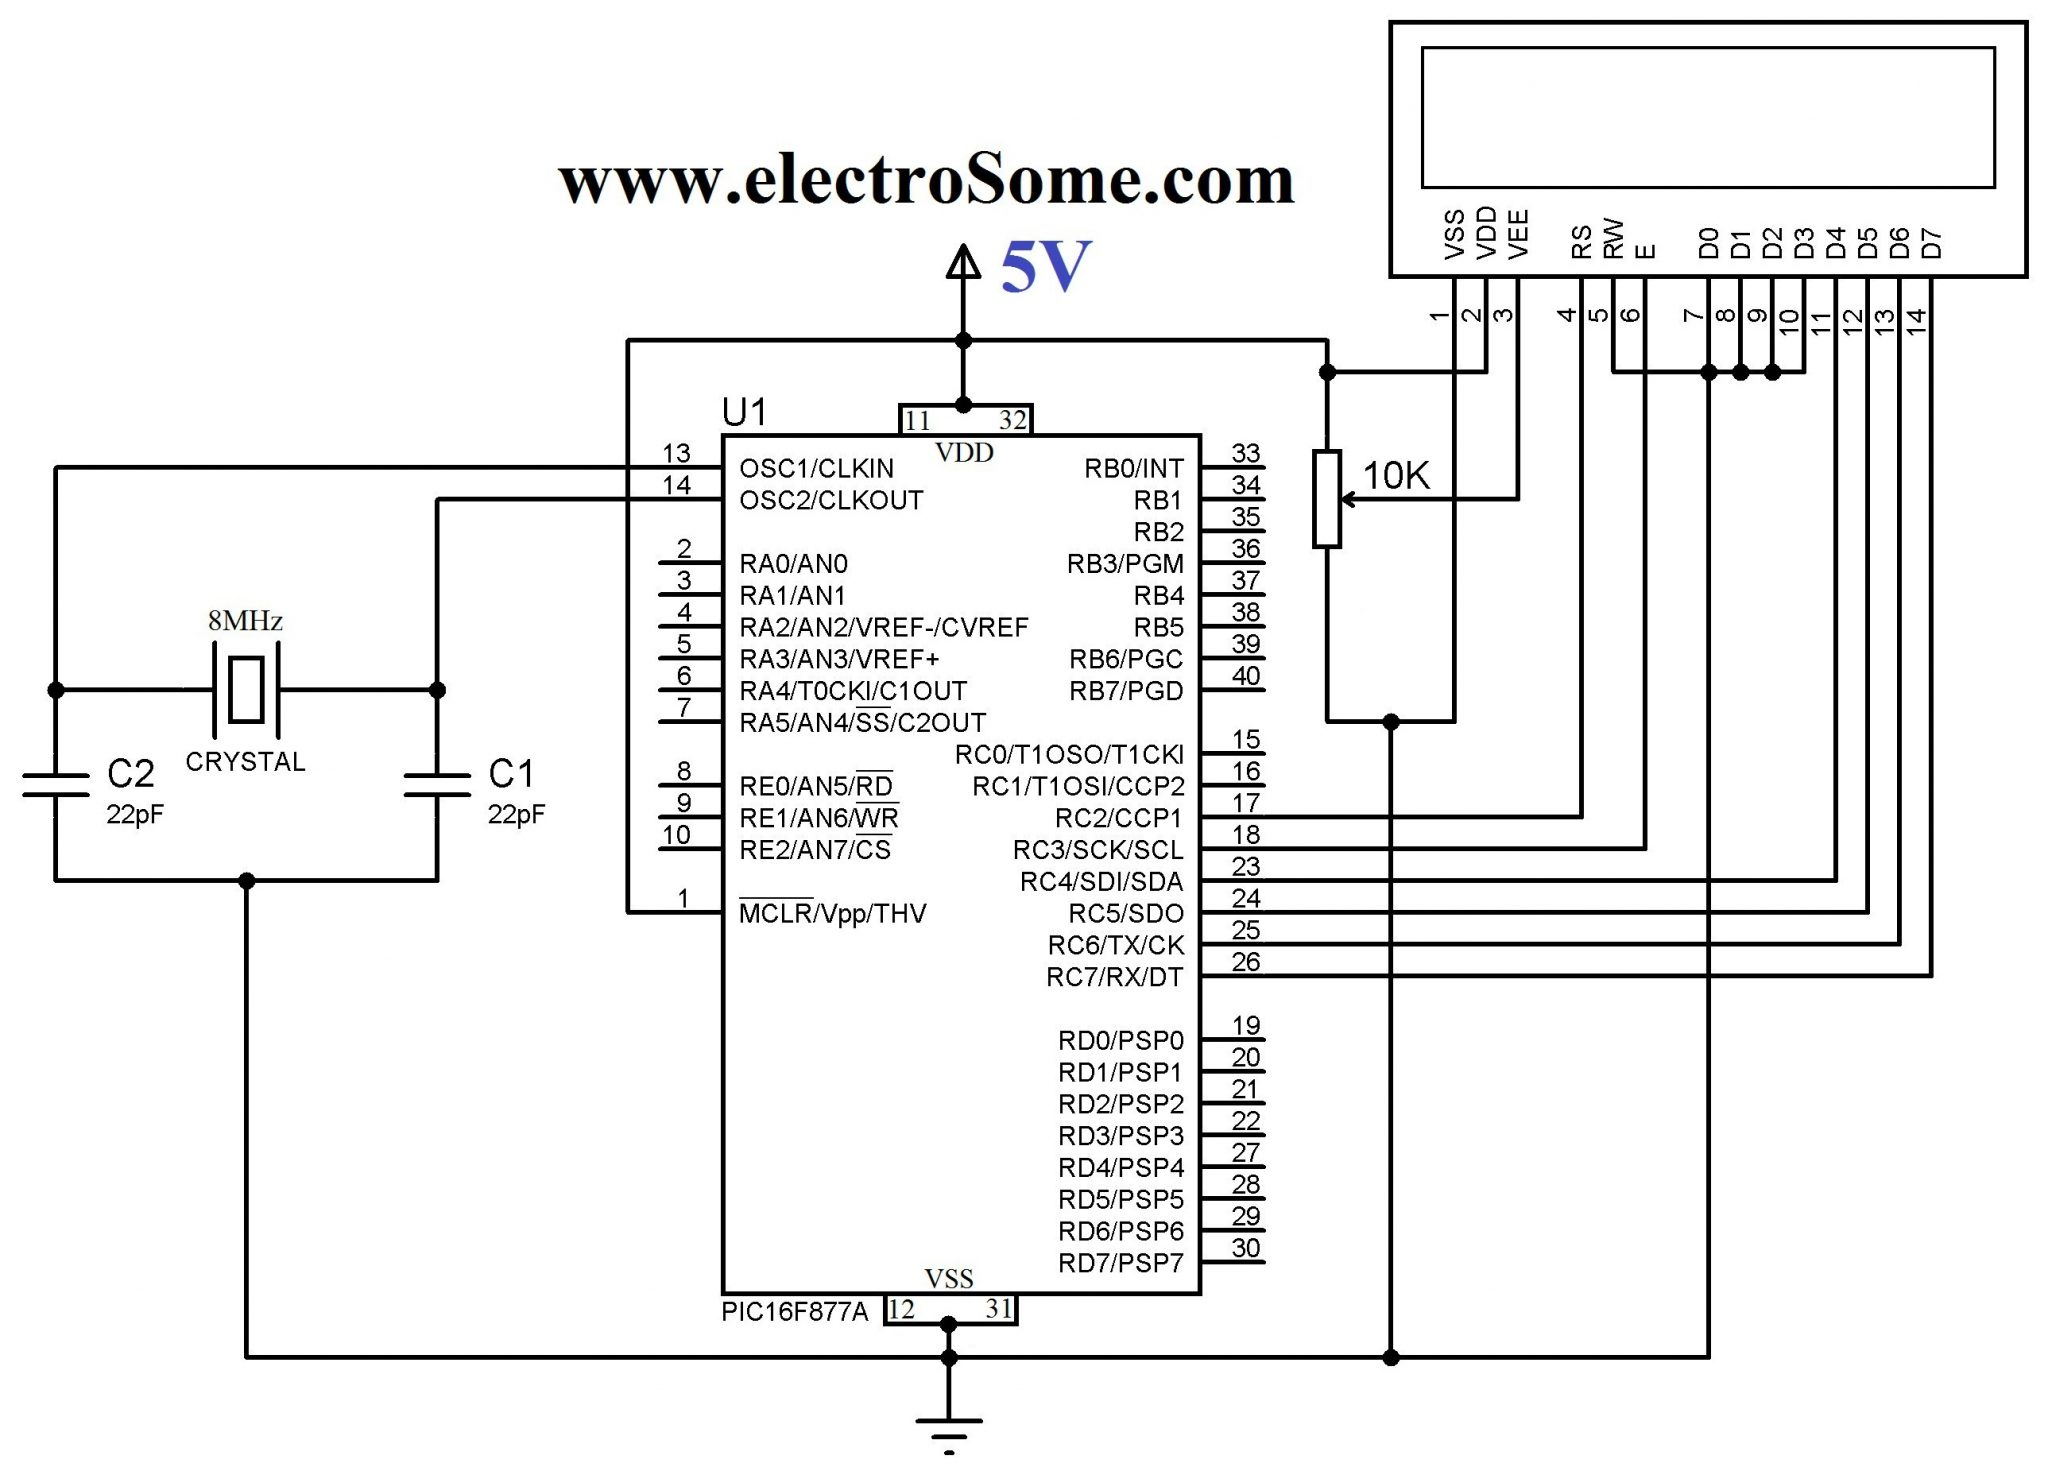 Lcd Interfacing With Pic Microcontroller Mikroc Pro Make A Digital Thermometer Circuit Ic Ds18b20 18f4550 Diagram